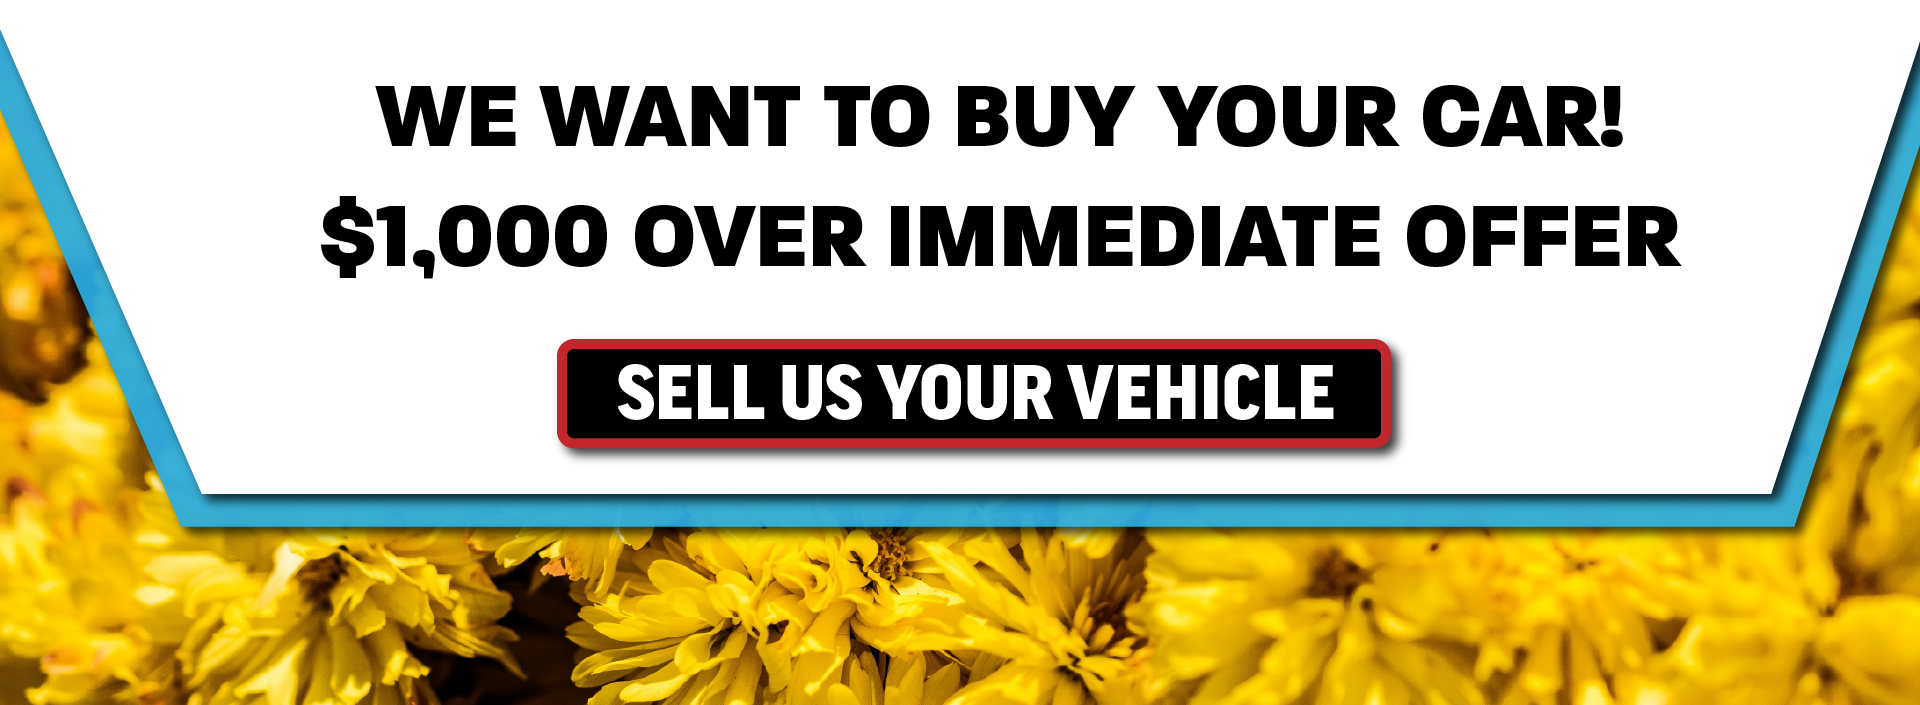 We Want to Buy Your Car_CDJR Fixed